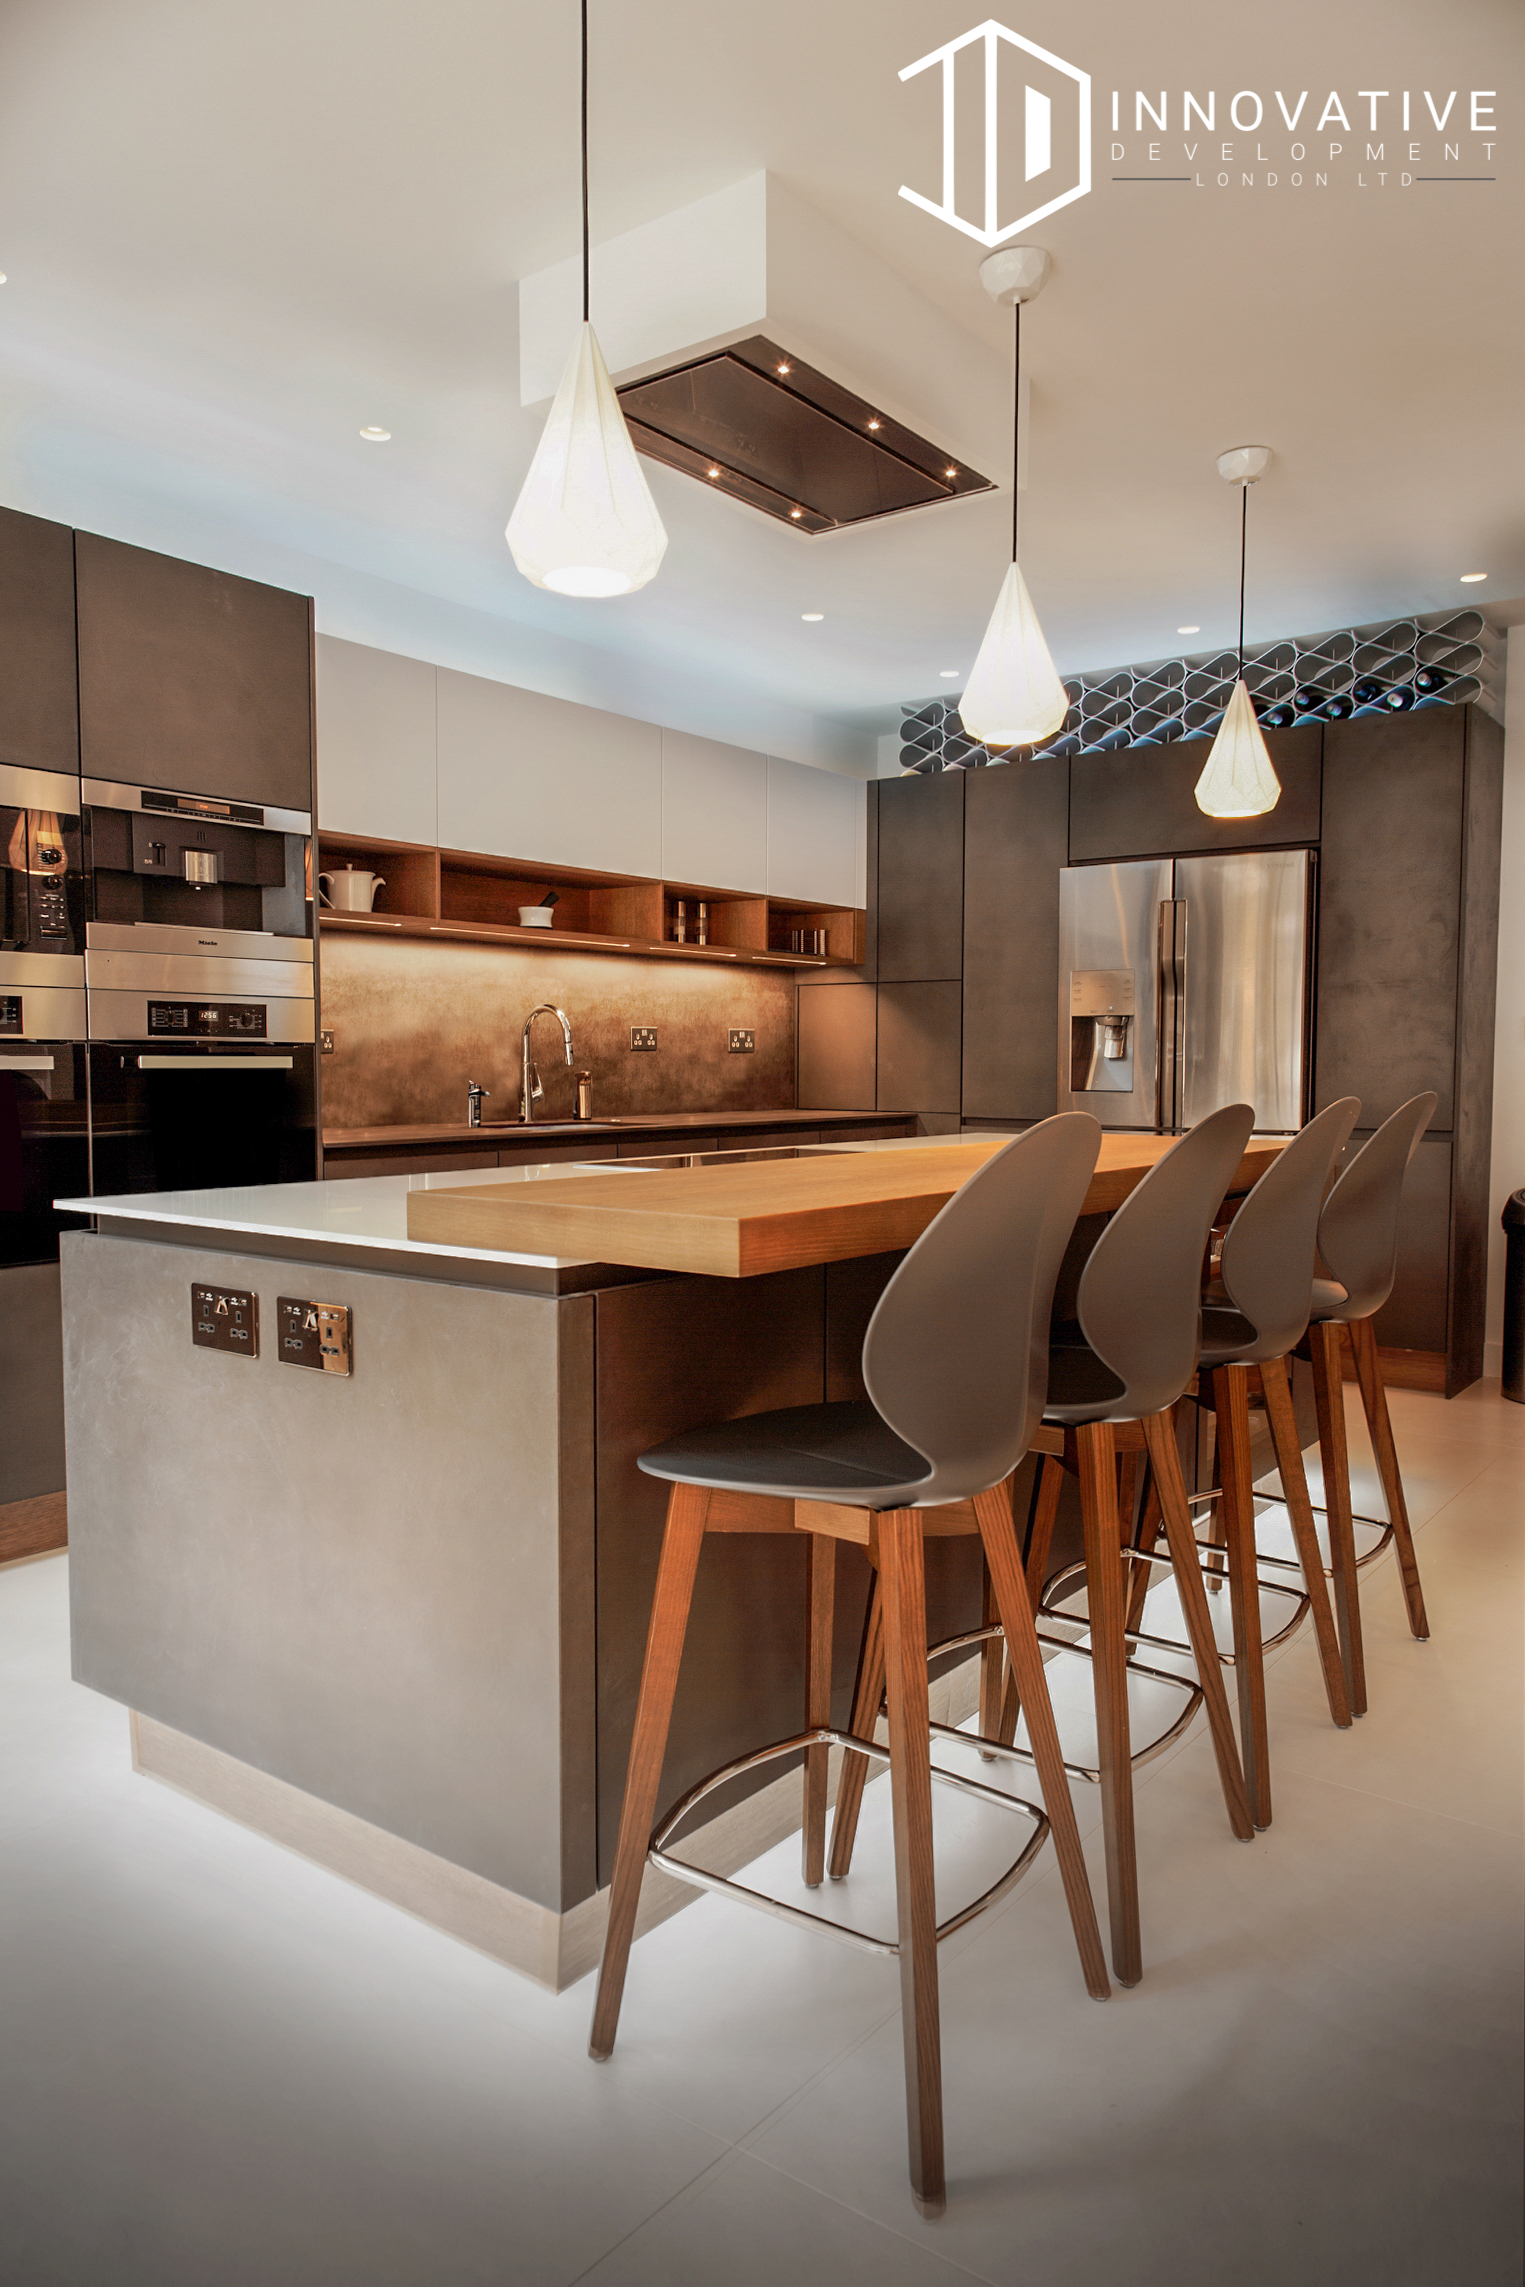 The modern kitchen with a creamy interior design for a completed Kitchen extension in Chiswick